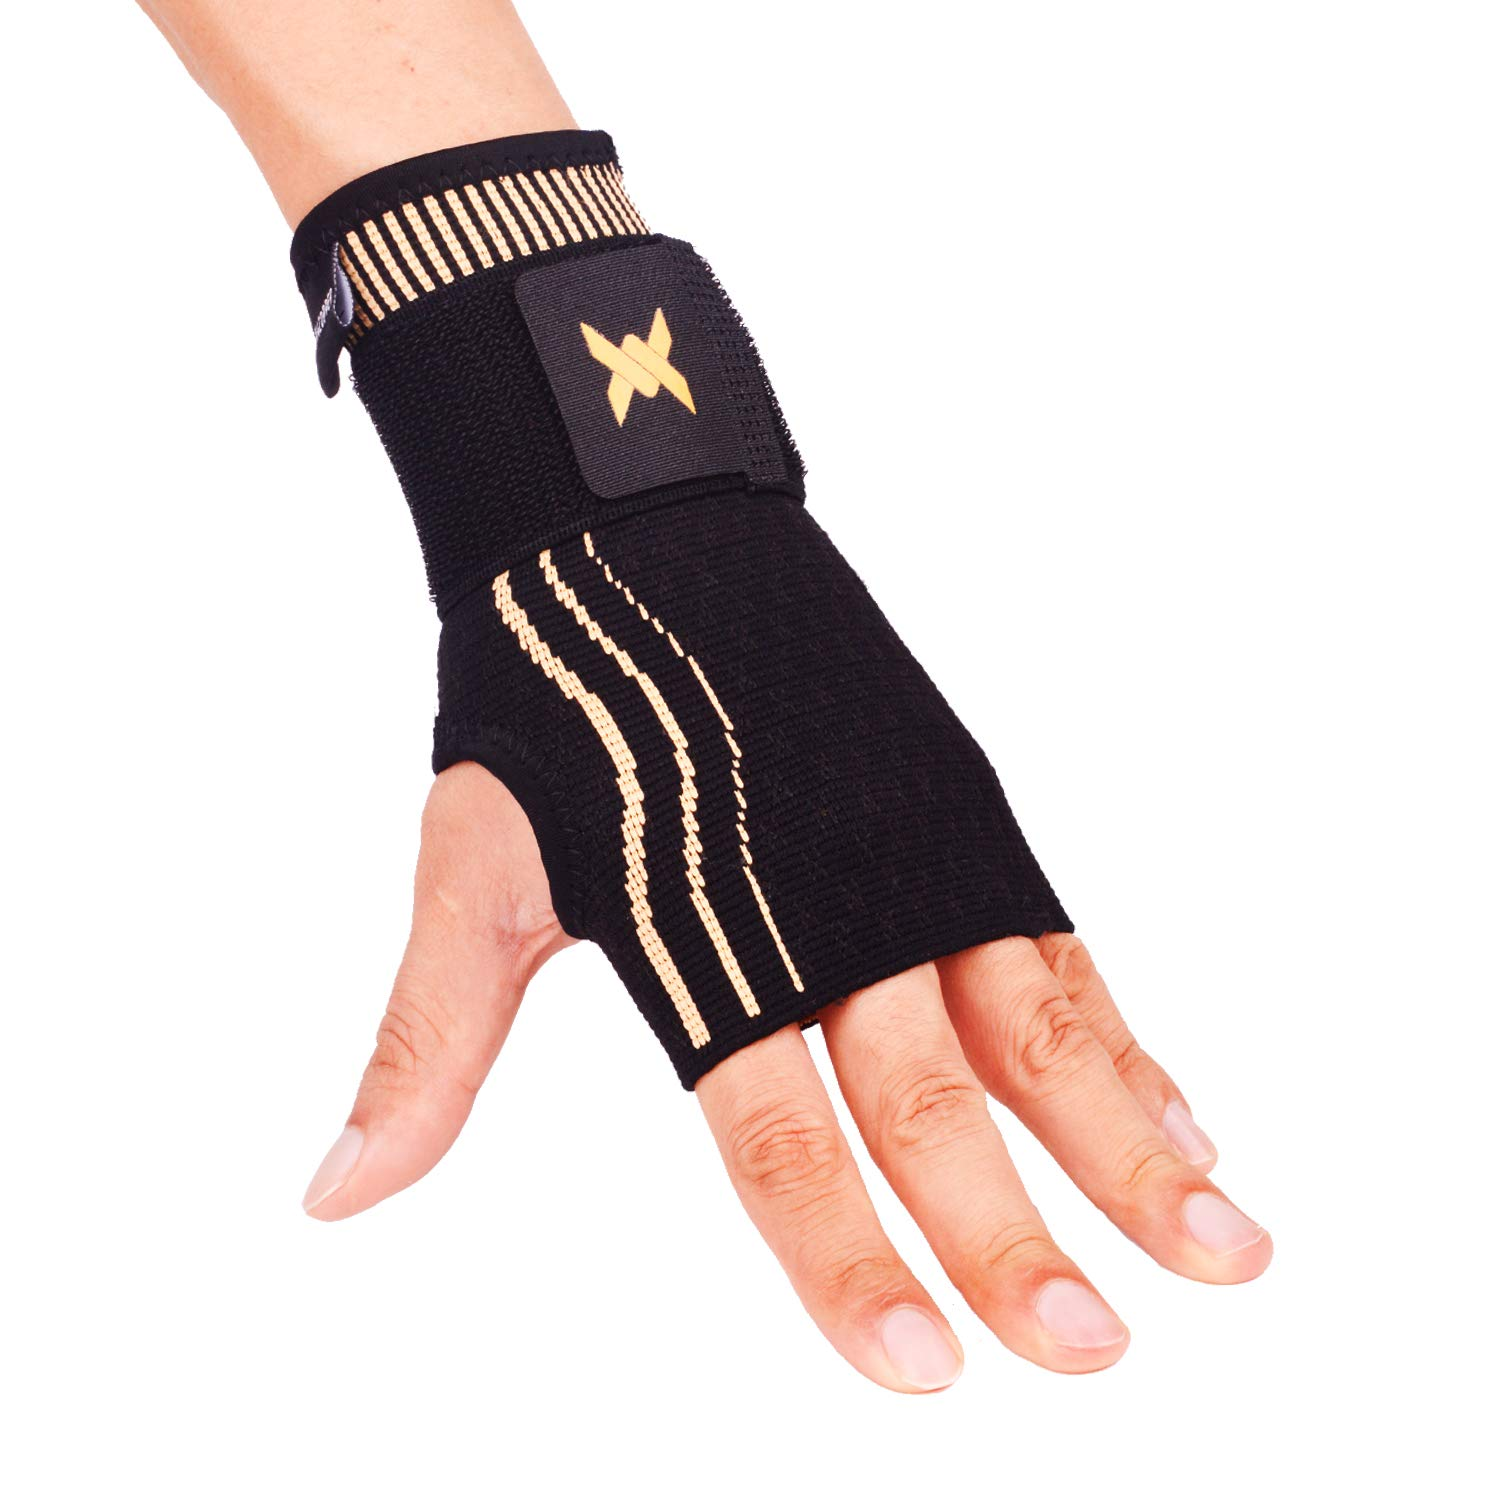 Thx4 Copper Wrist Sleeve with Adjustable Strap for Extra Support -Copper Infused Compression Wrist Brace-Relief for Carpal Tunnel, RSI, Tendonitis, Arthritis, Wrist Sprains and Fatigue-Single-M